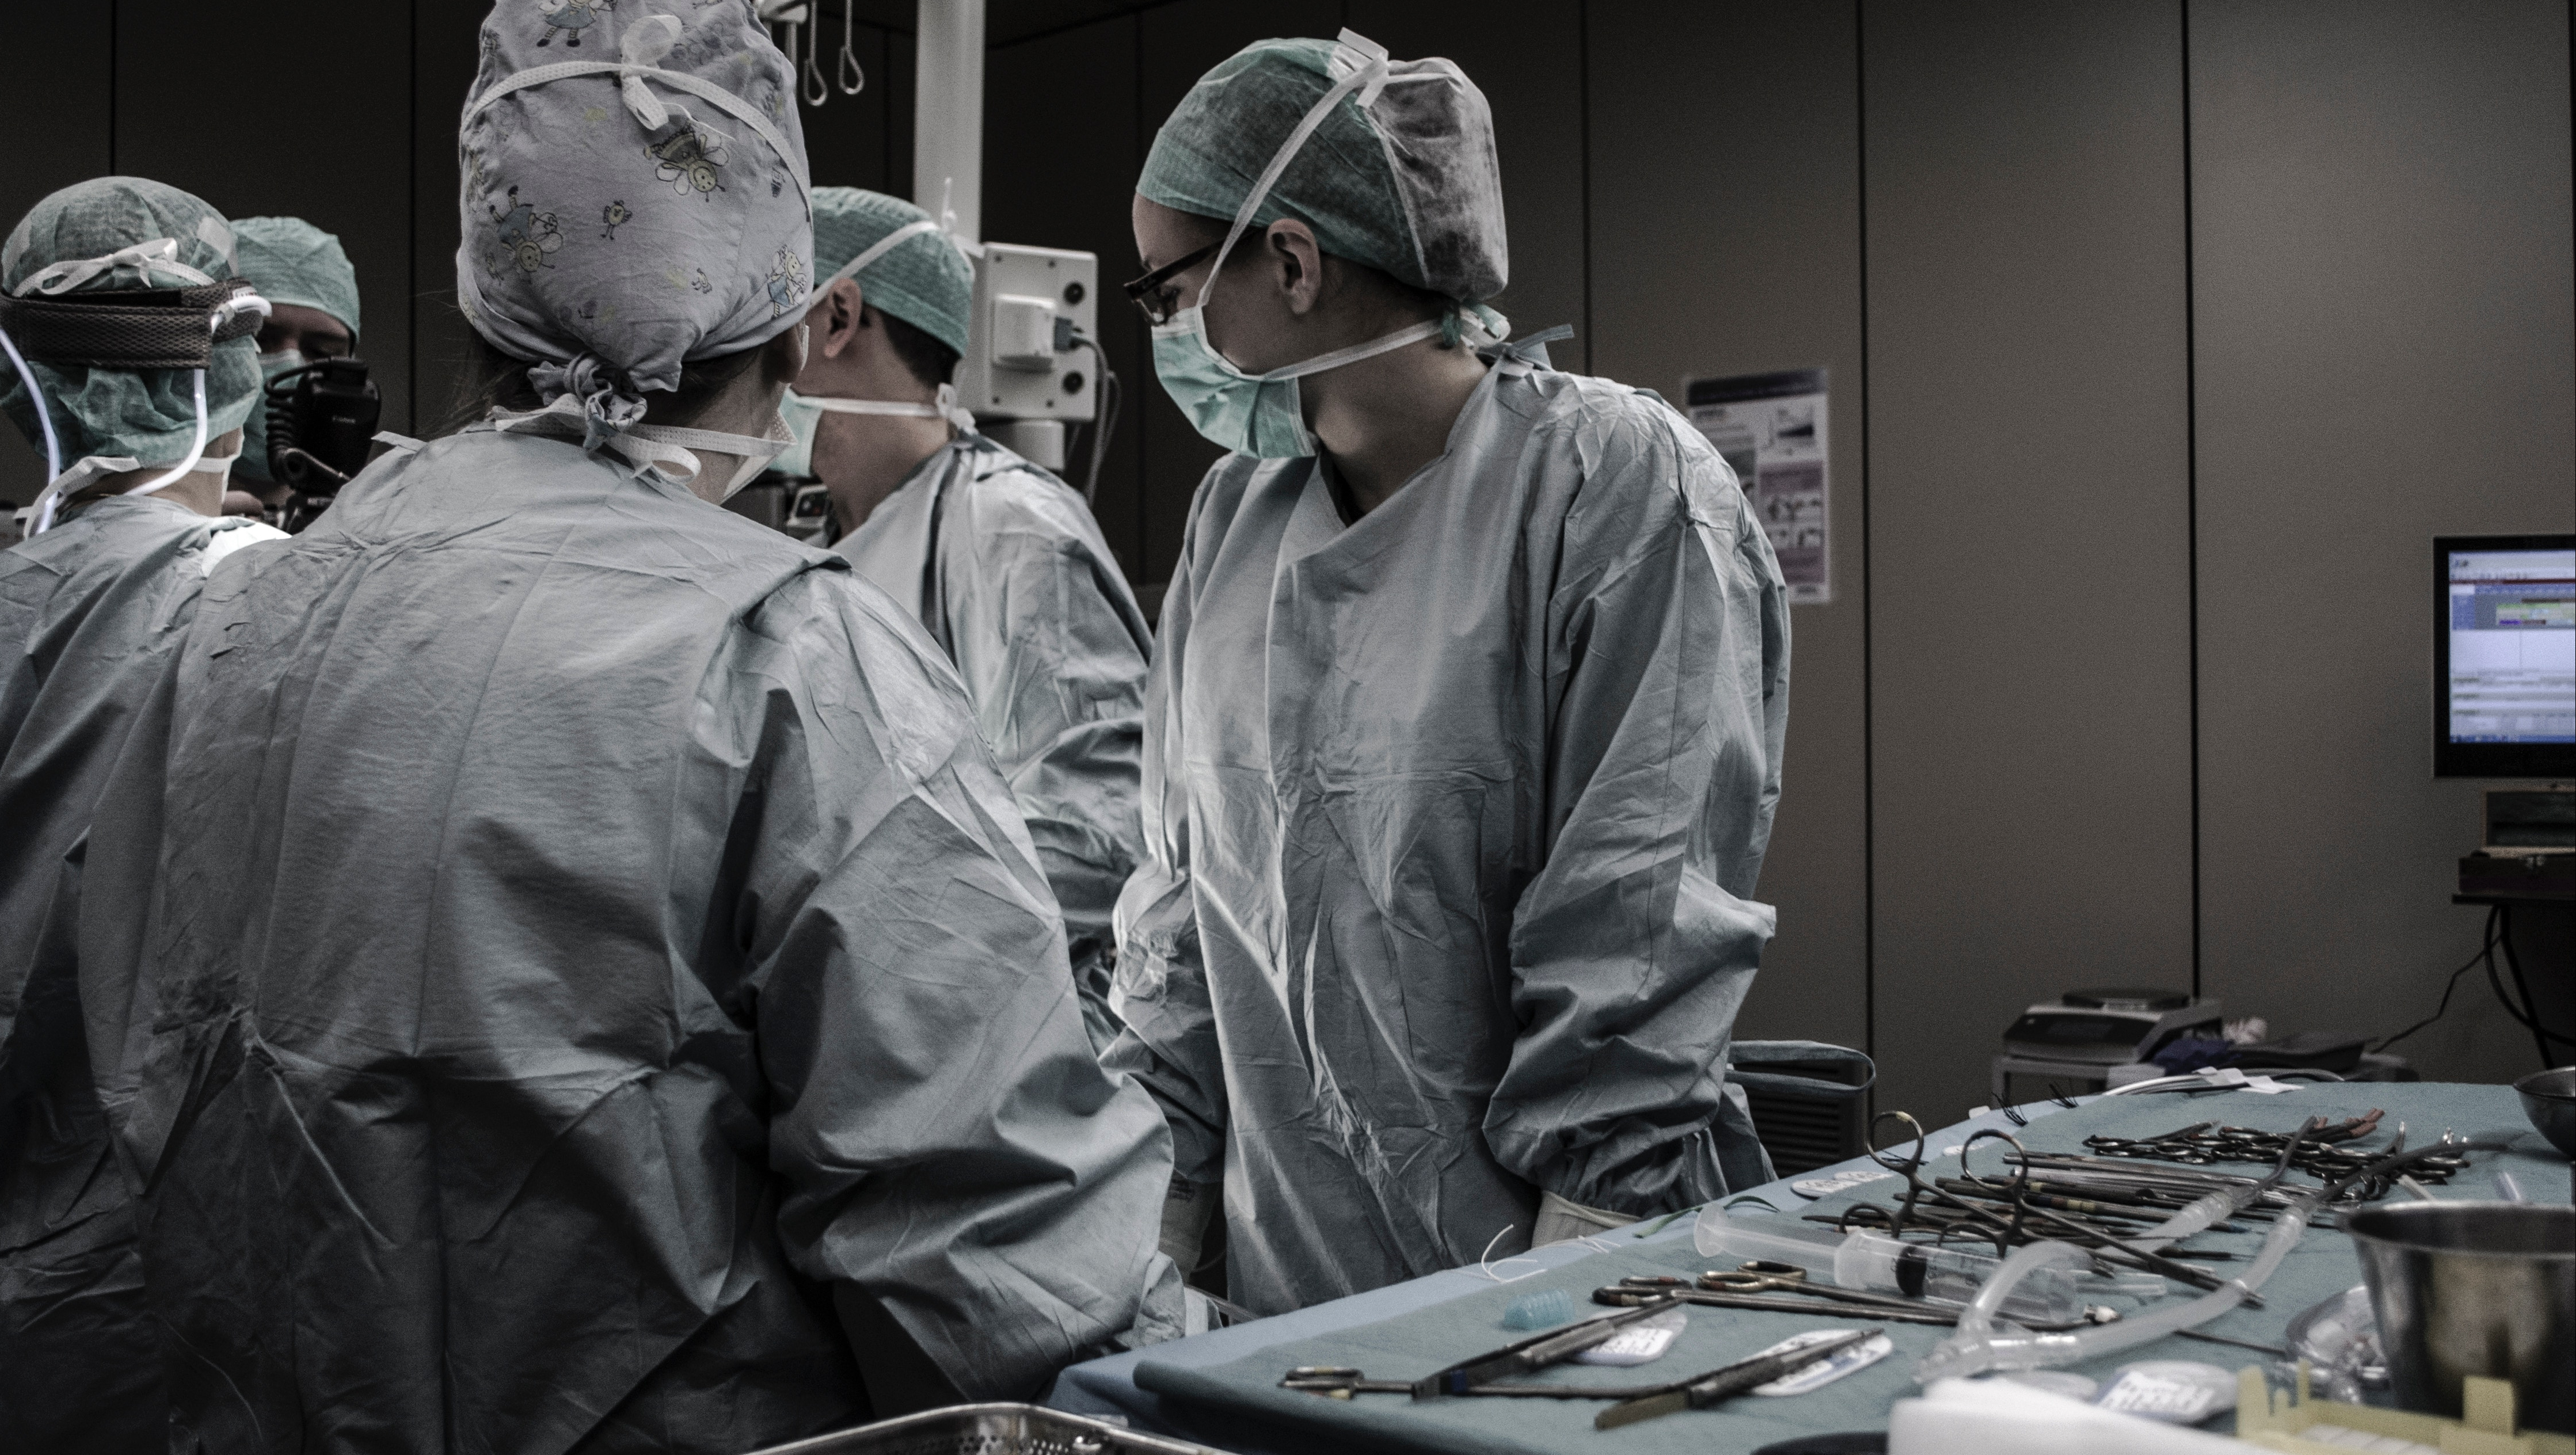 People in an operating theatre